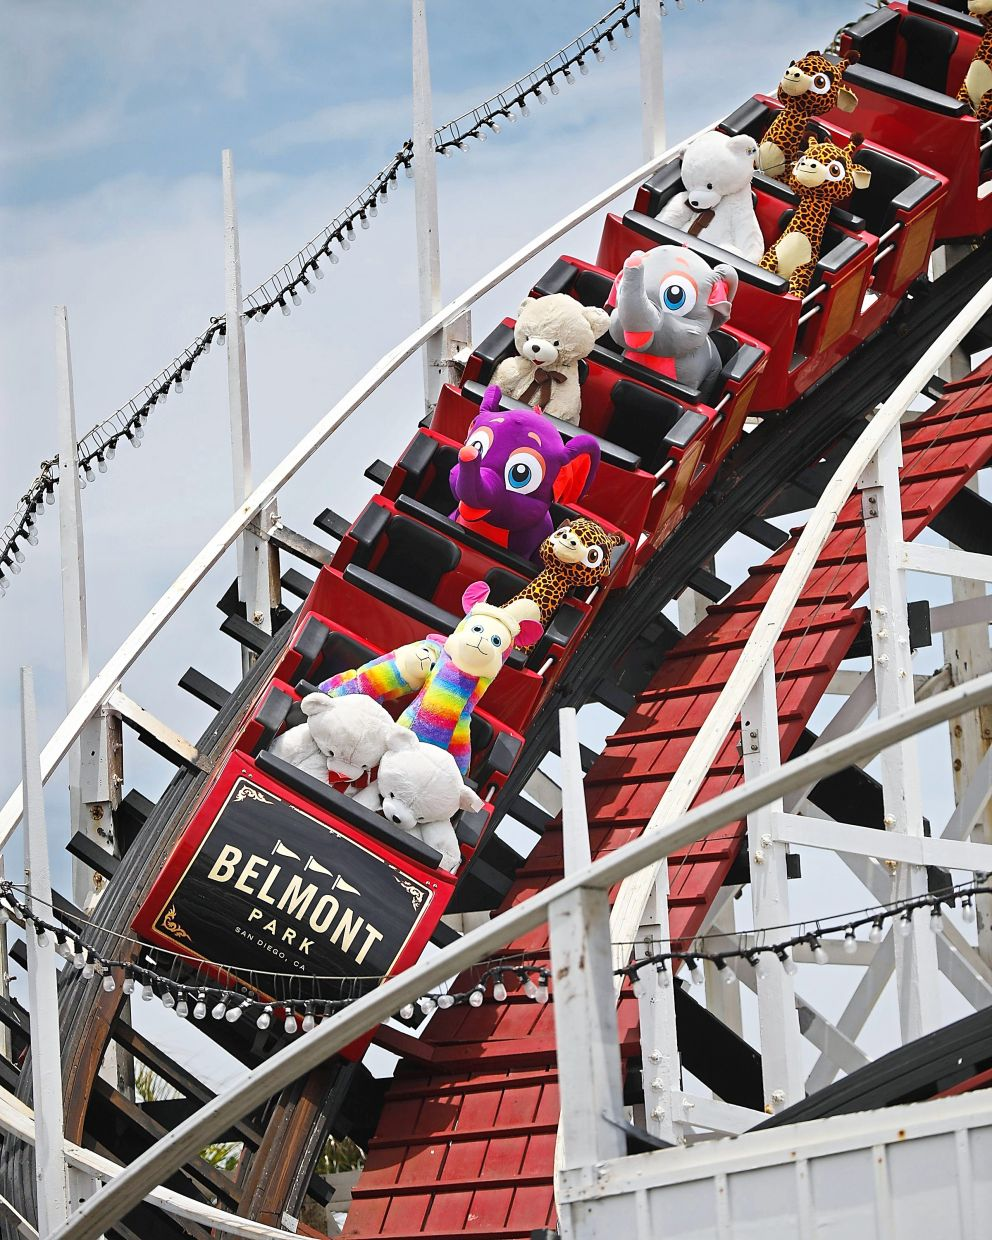 Stuffed toys ride the Giant Dipper rollercoaster at Belmont Park on June 1. The park has been running the coaster to keep it from tightening up during the recent closures. — K.C. ALFRED/TNS